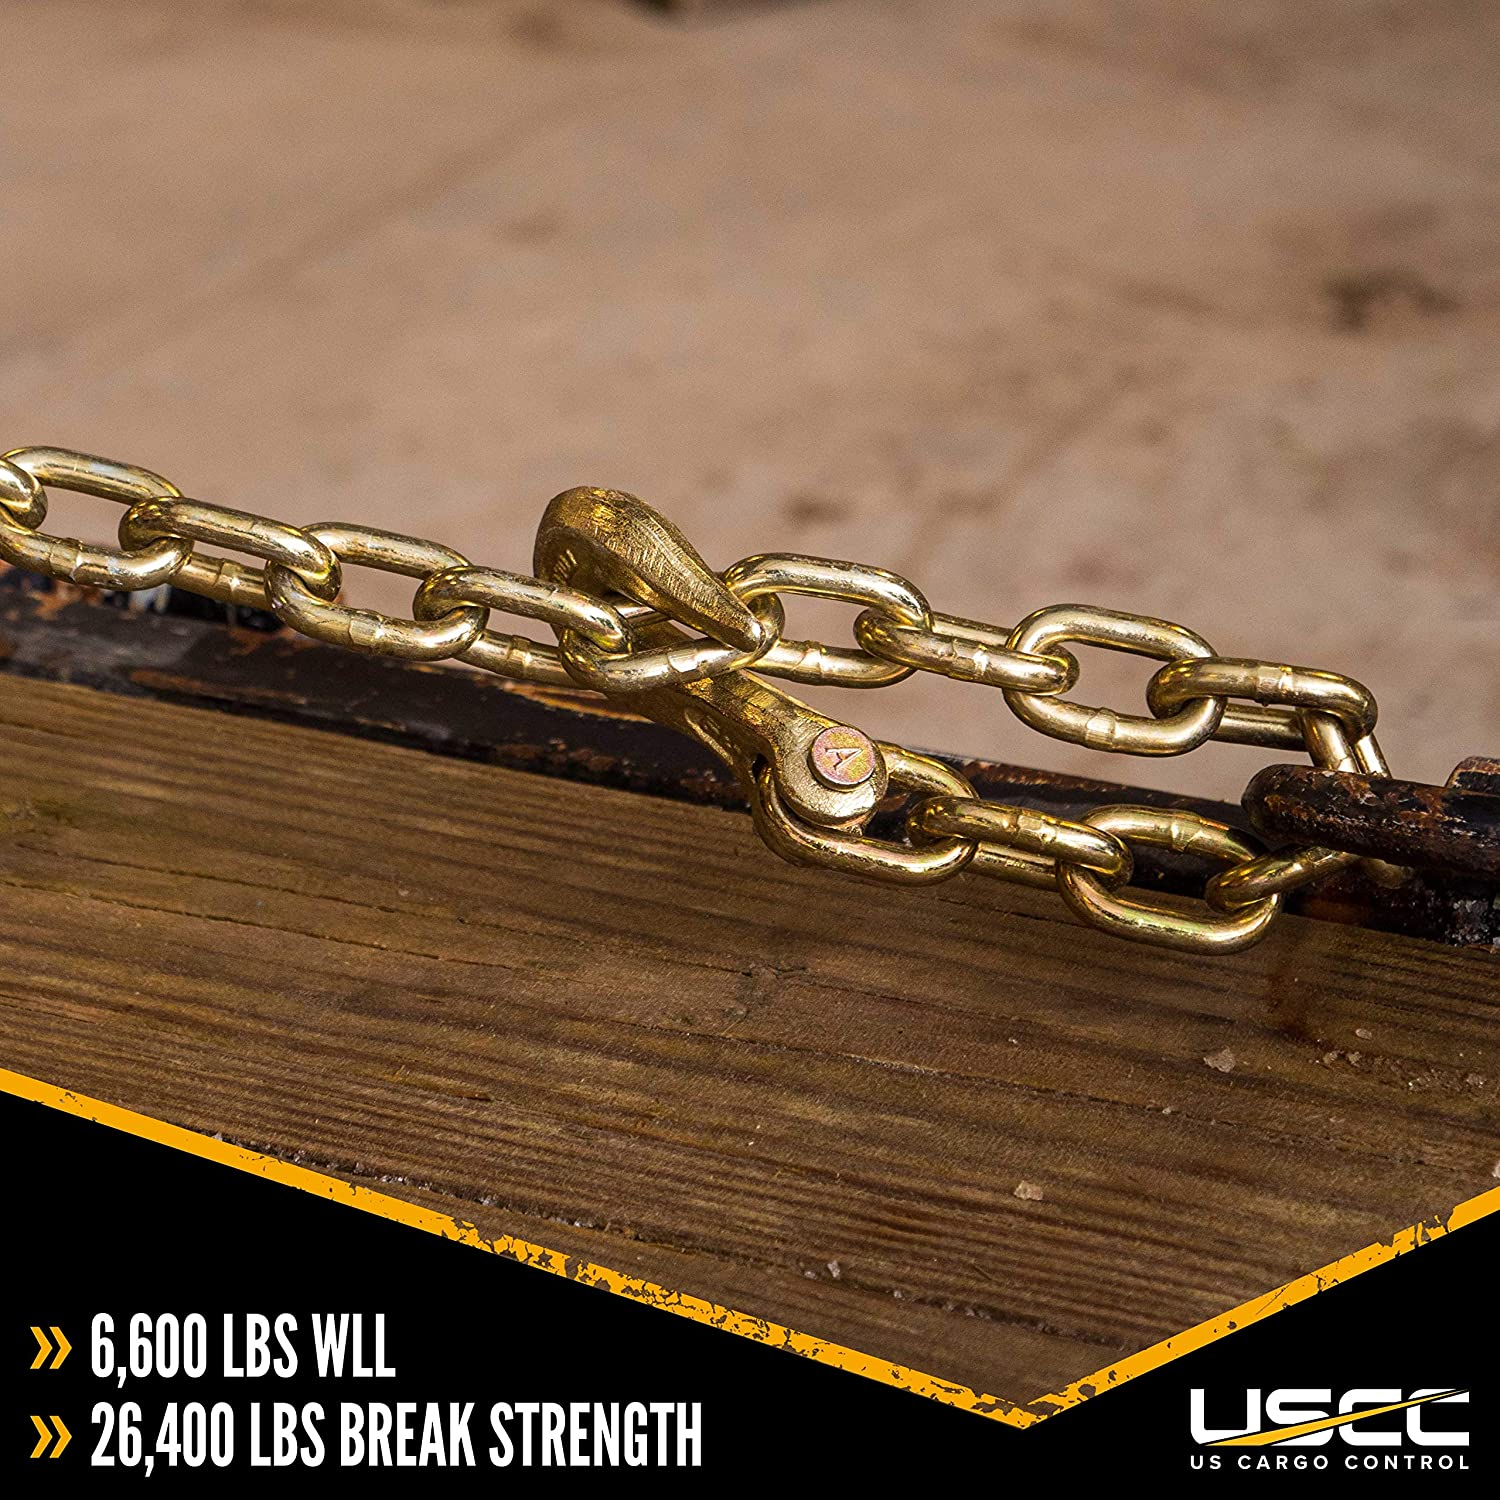 6,600 Pound Working Load Limit 3//8 Inch x 16 Foot Load Chain US Cargo Control Grade 70 Transport Chain with Clevis Grab Hooks Easily Secure Heavy Loads to A Truck Or Flatbed Trailer